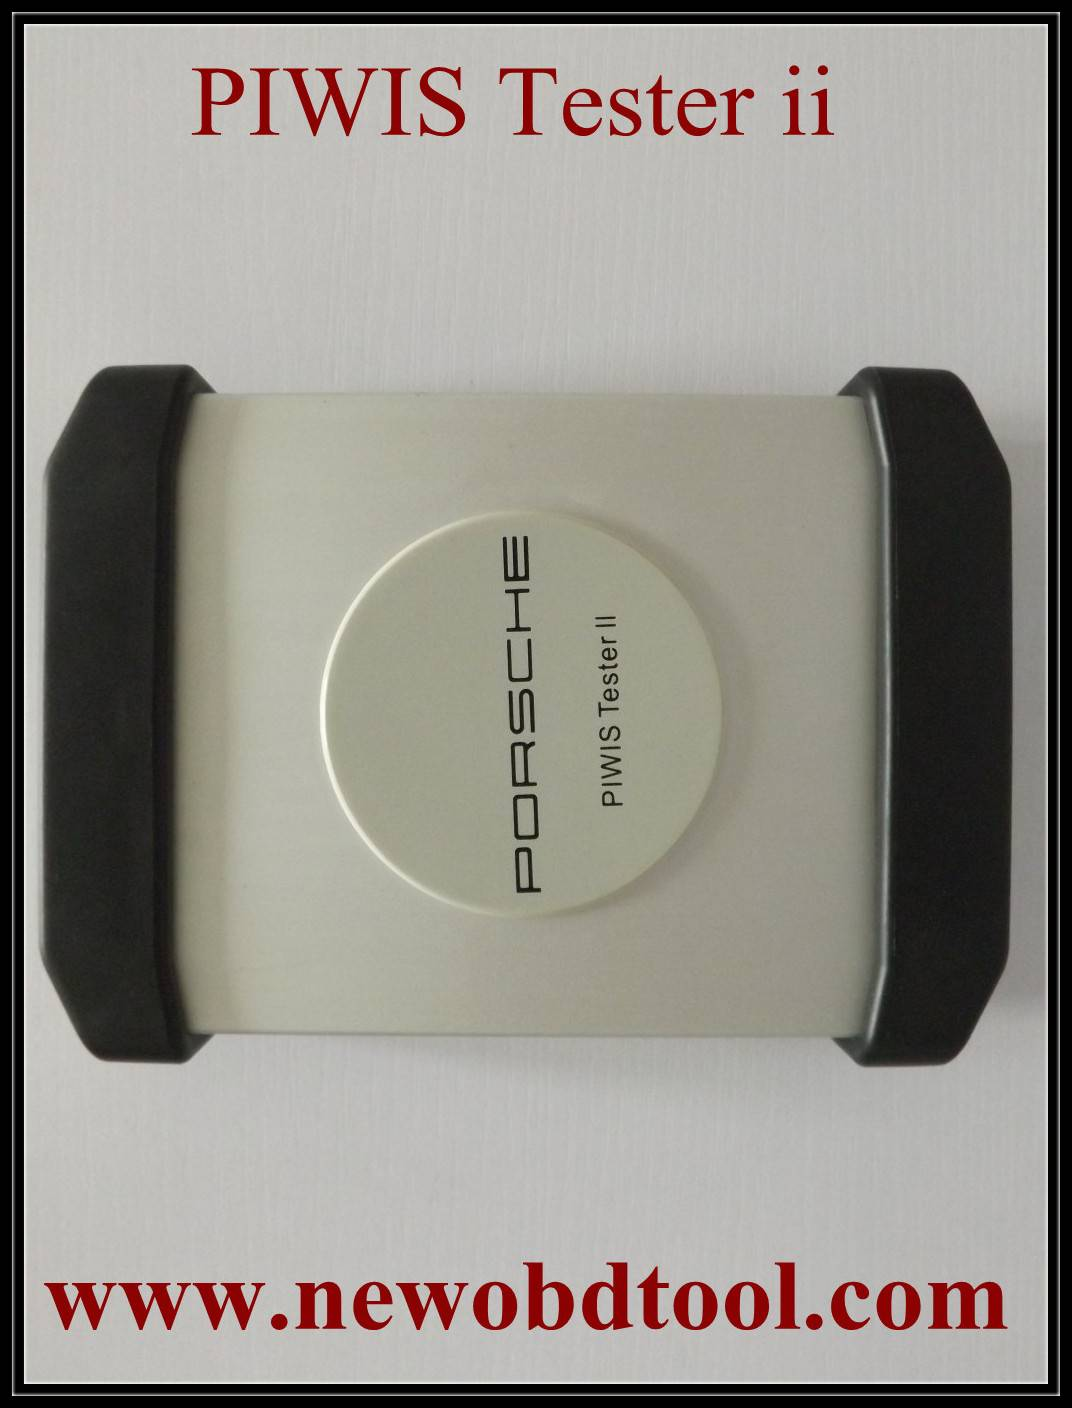 PIWIS Tester II Latest Design for Porsche Cars from newobdtool